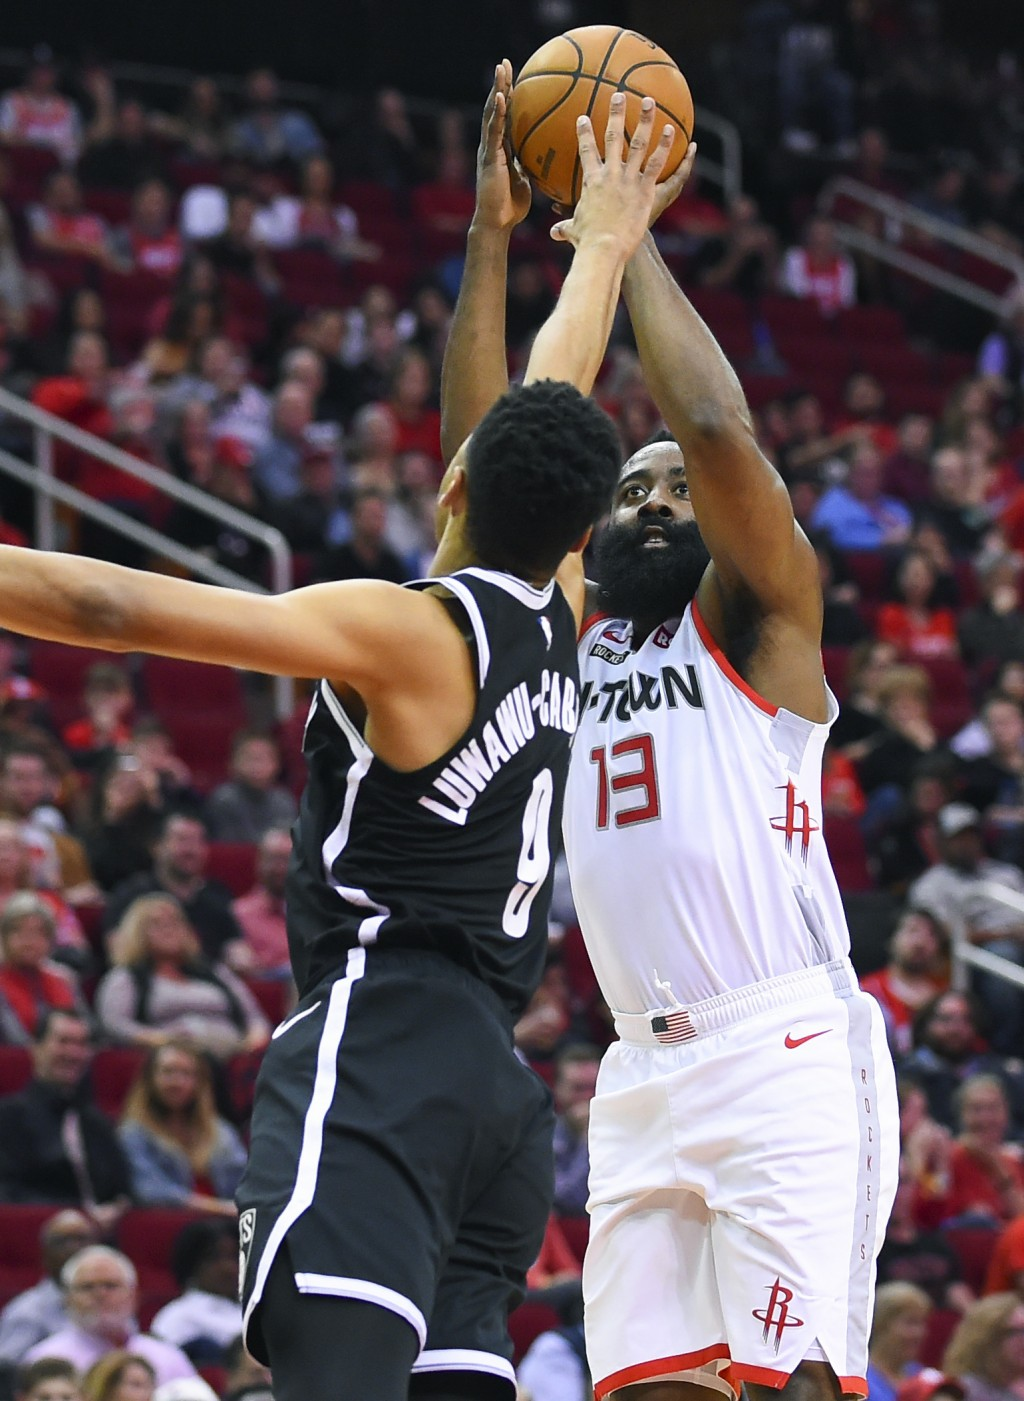 Houston Rockets guard James Harden, right, shoots as Brooklyn Nets guard Timothe Luwawu-Cabarrot defends during the first half of an NBA basketball ga...